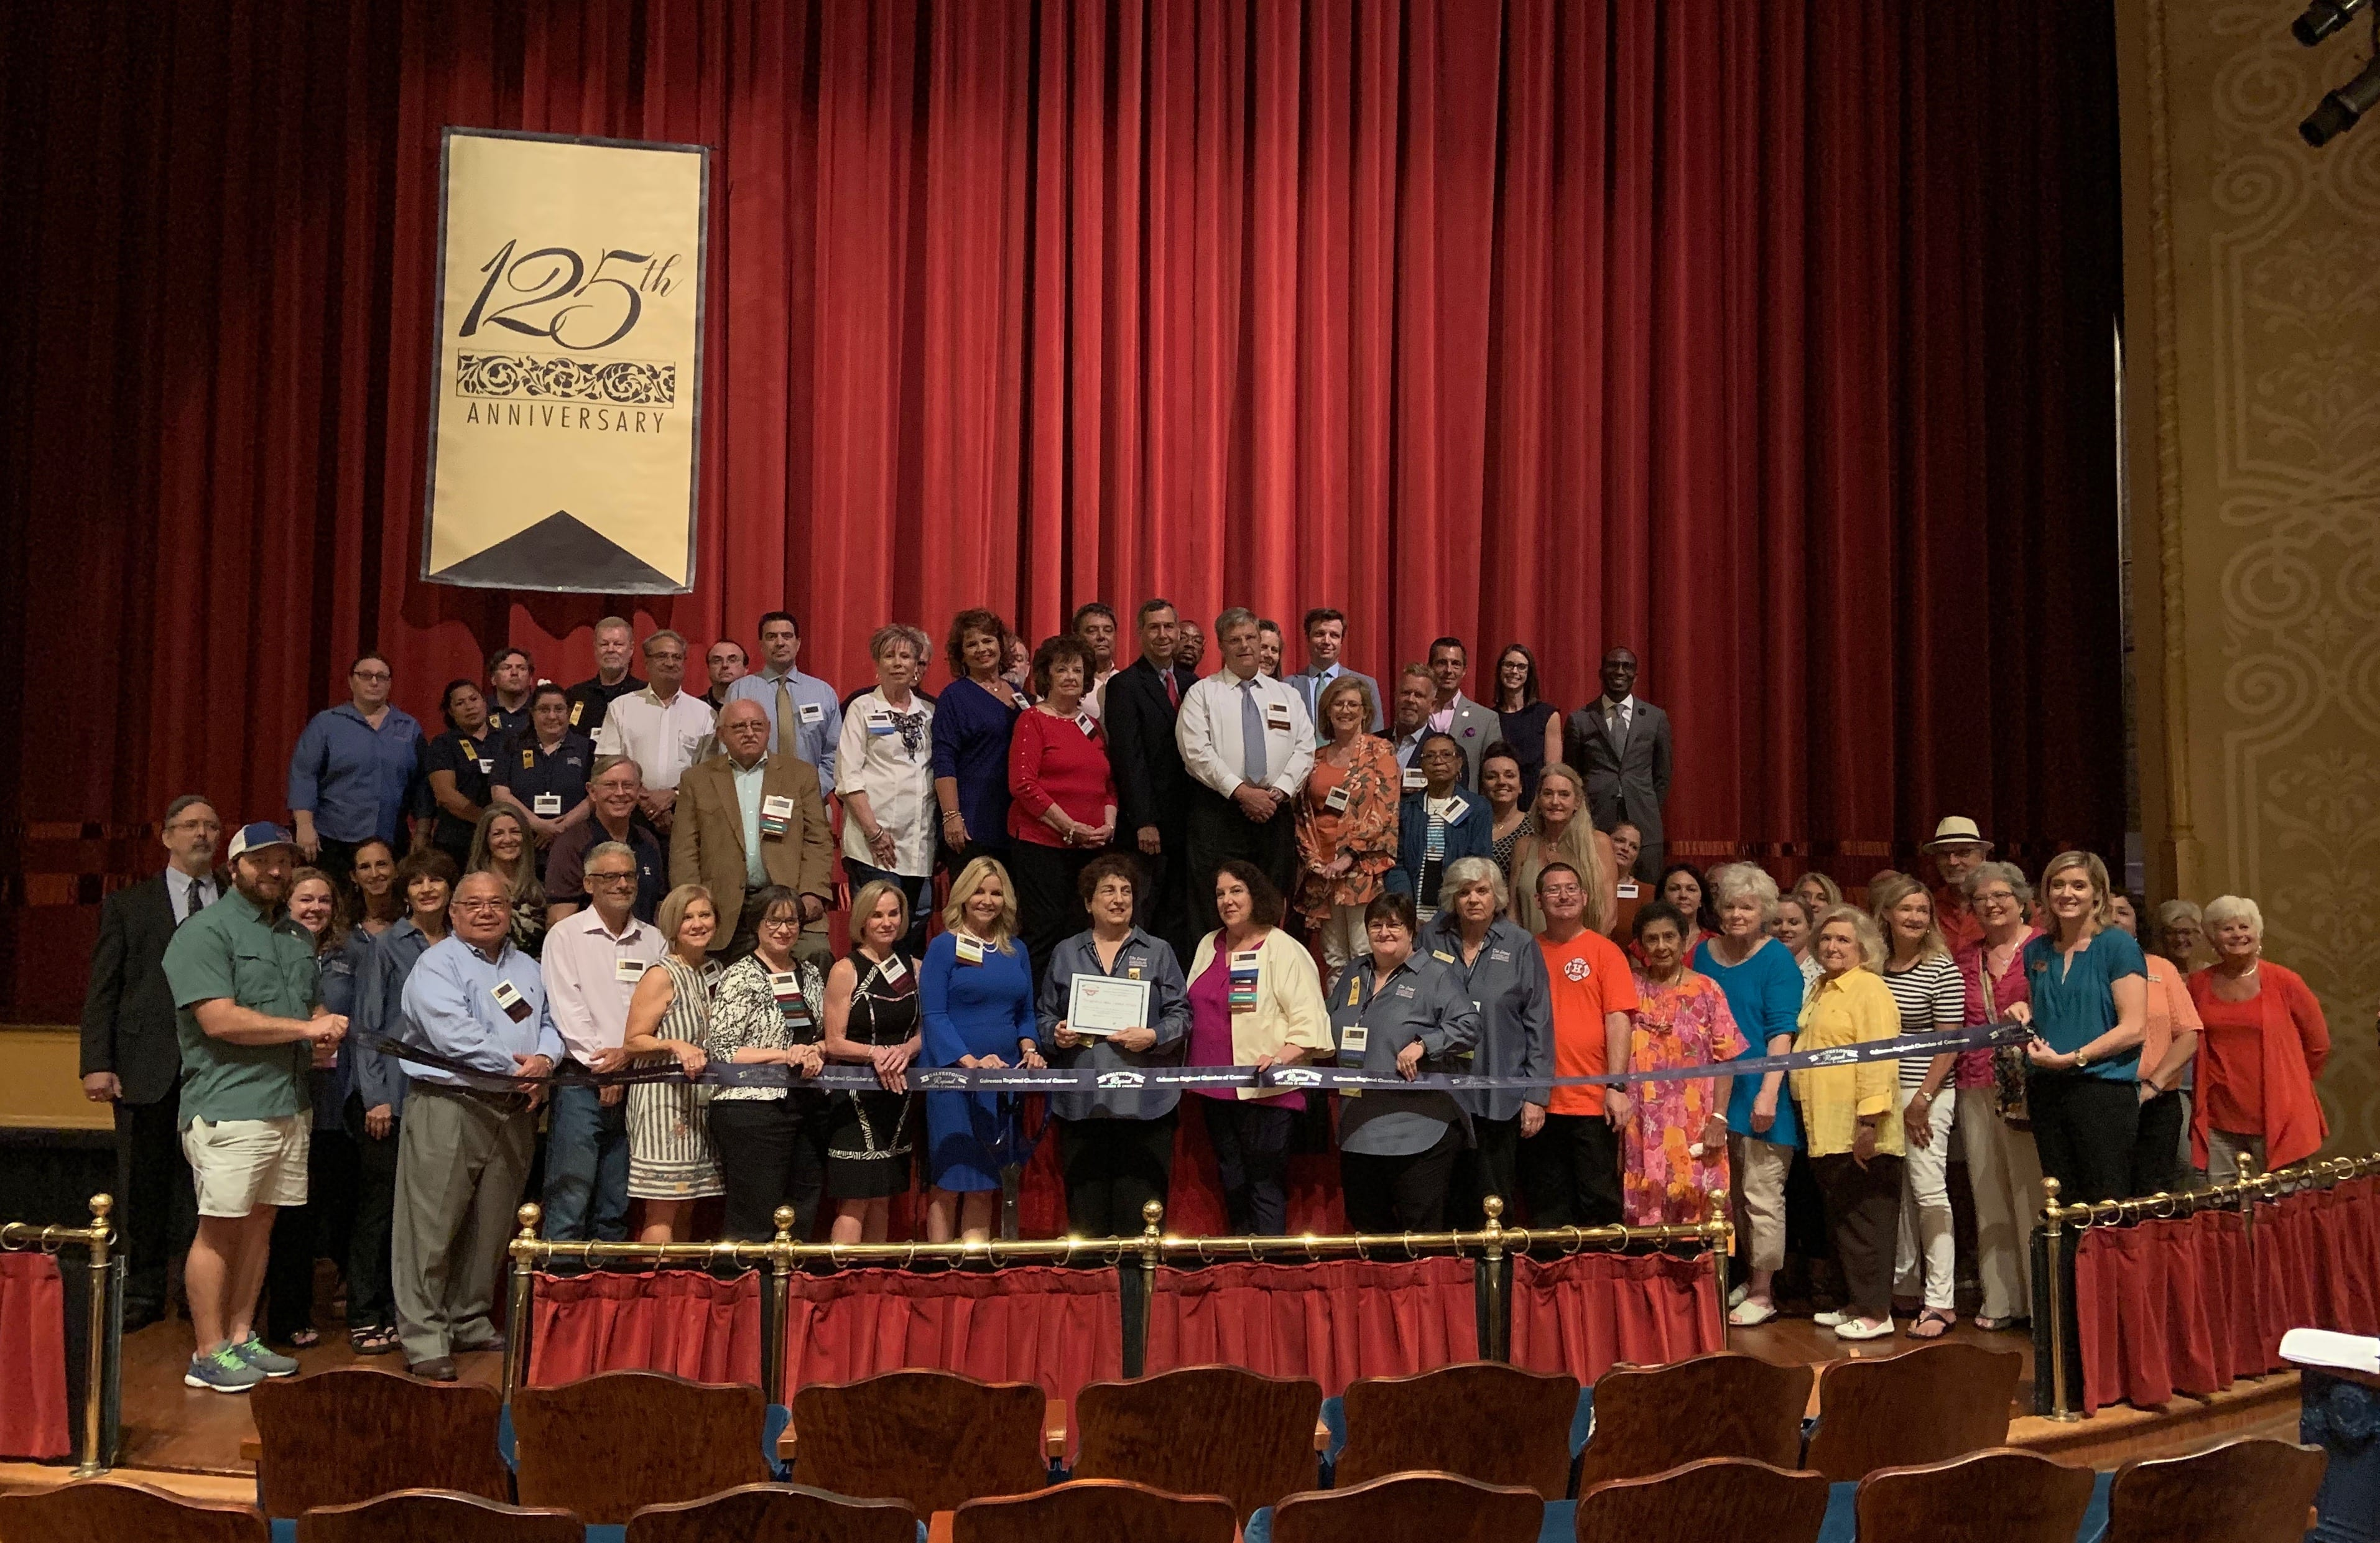 ribbon cutting of the grand 1894 opera House's 125th anniversary